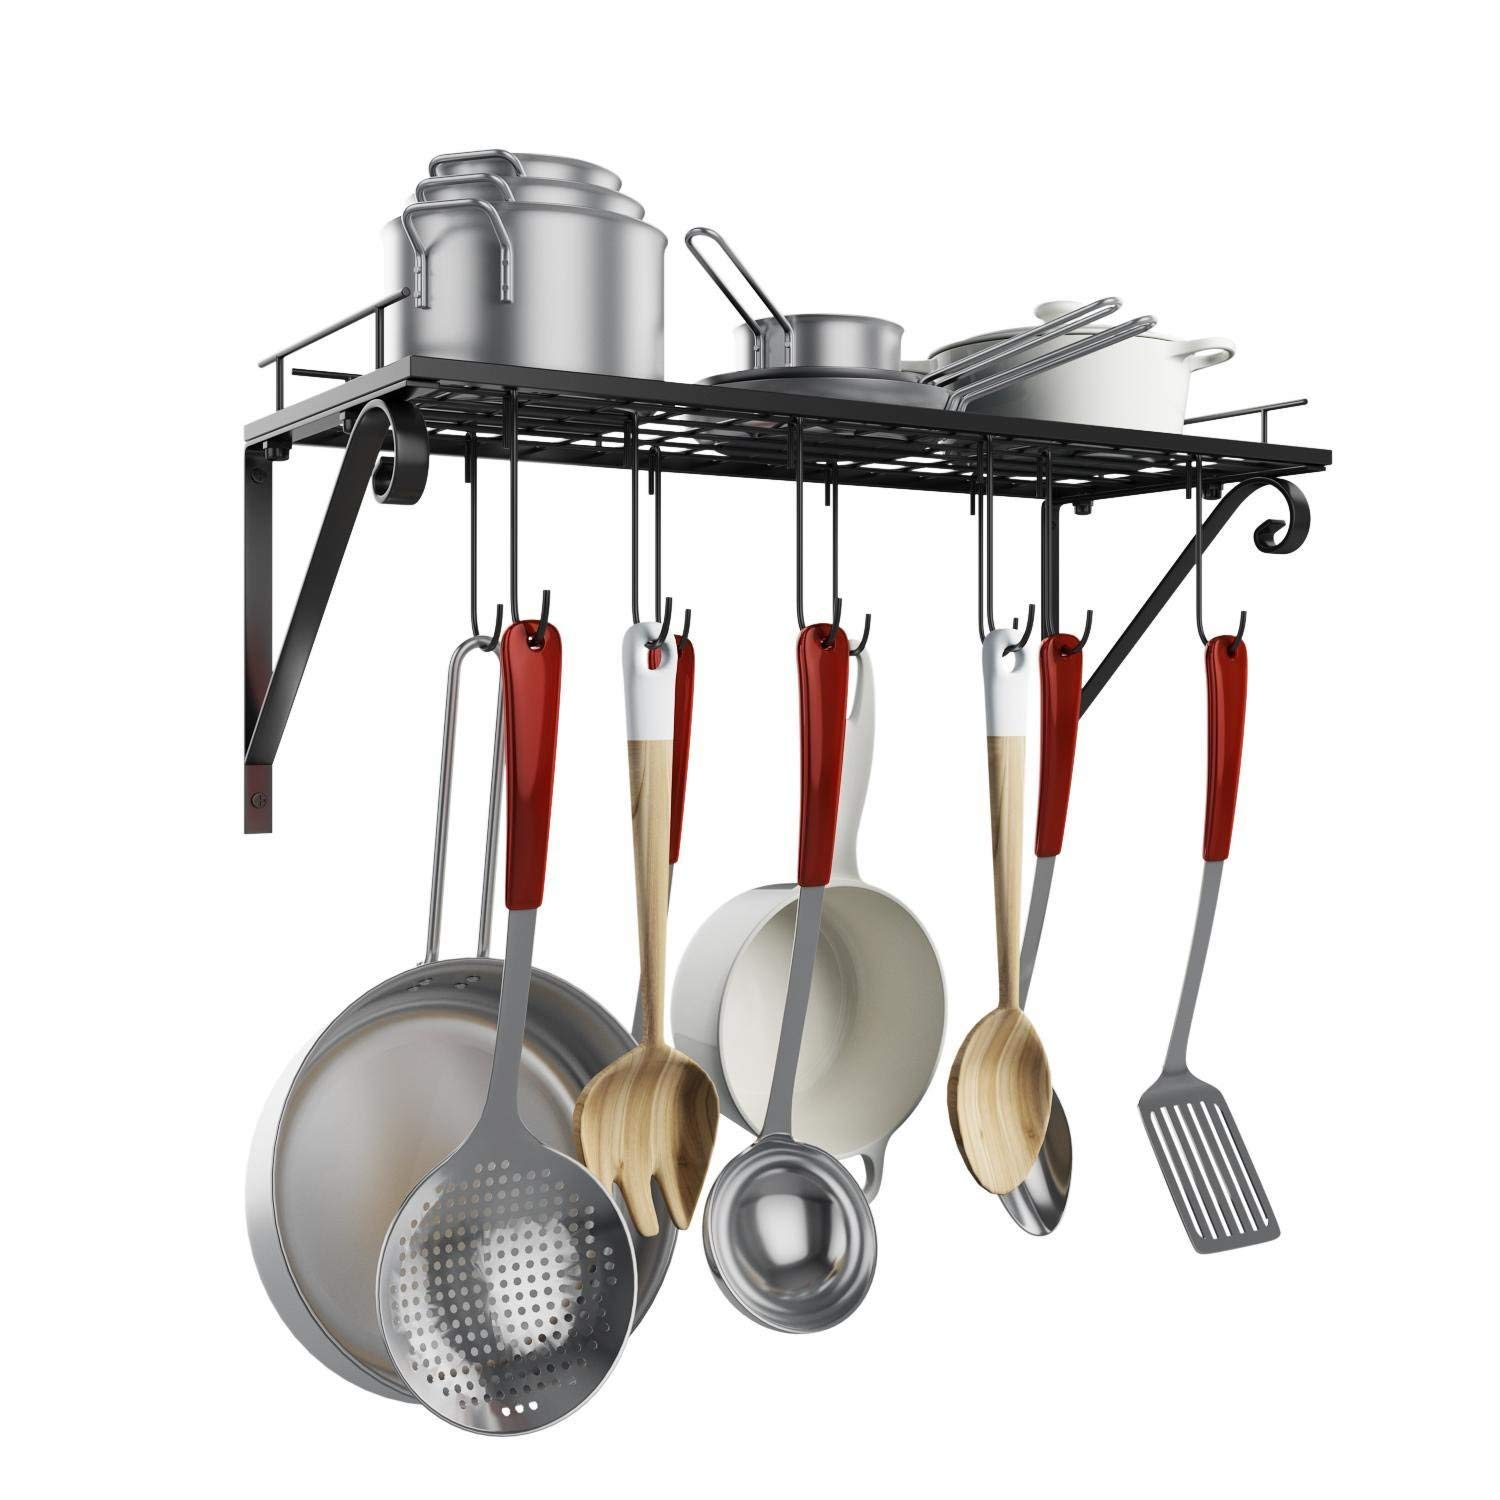 Deals Finders | Amazon: Home Kitchen Wall Pot Pan Rack, Wall ...